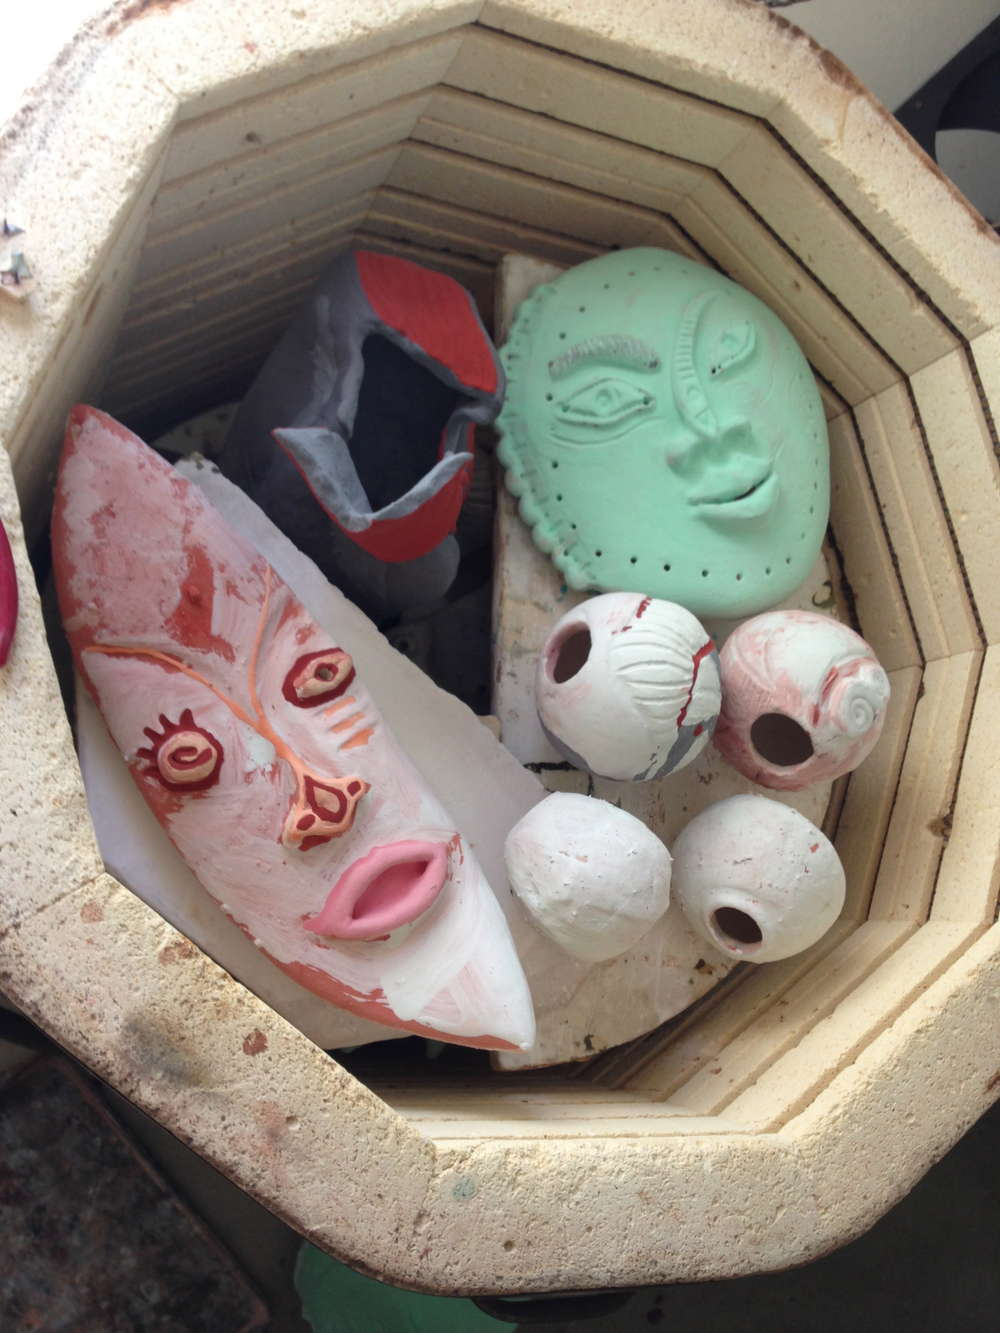 In the glaze kiln